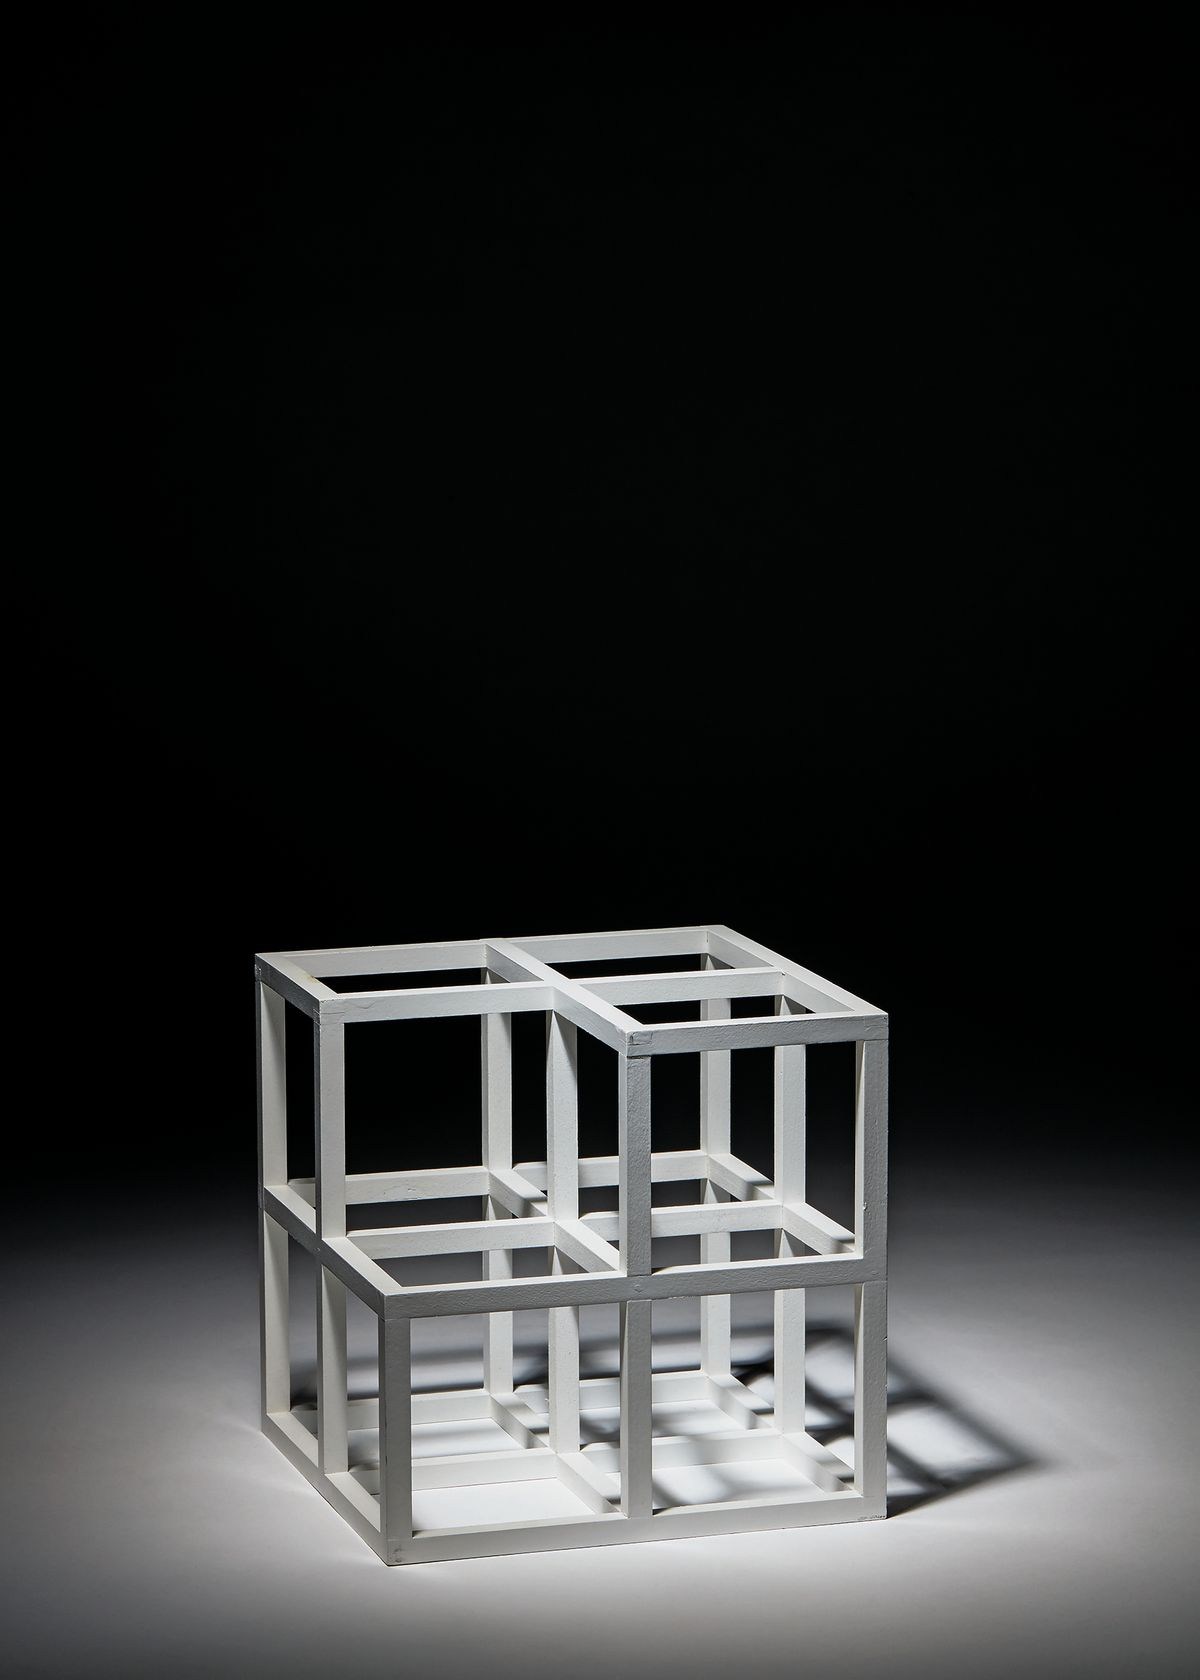 Grid_Sculpture.jpg